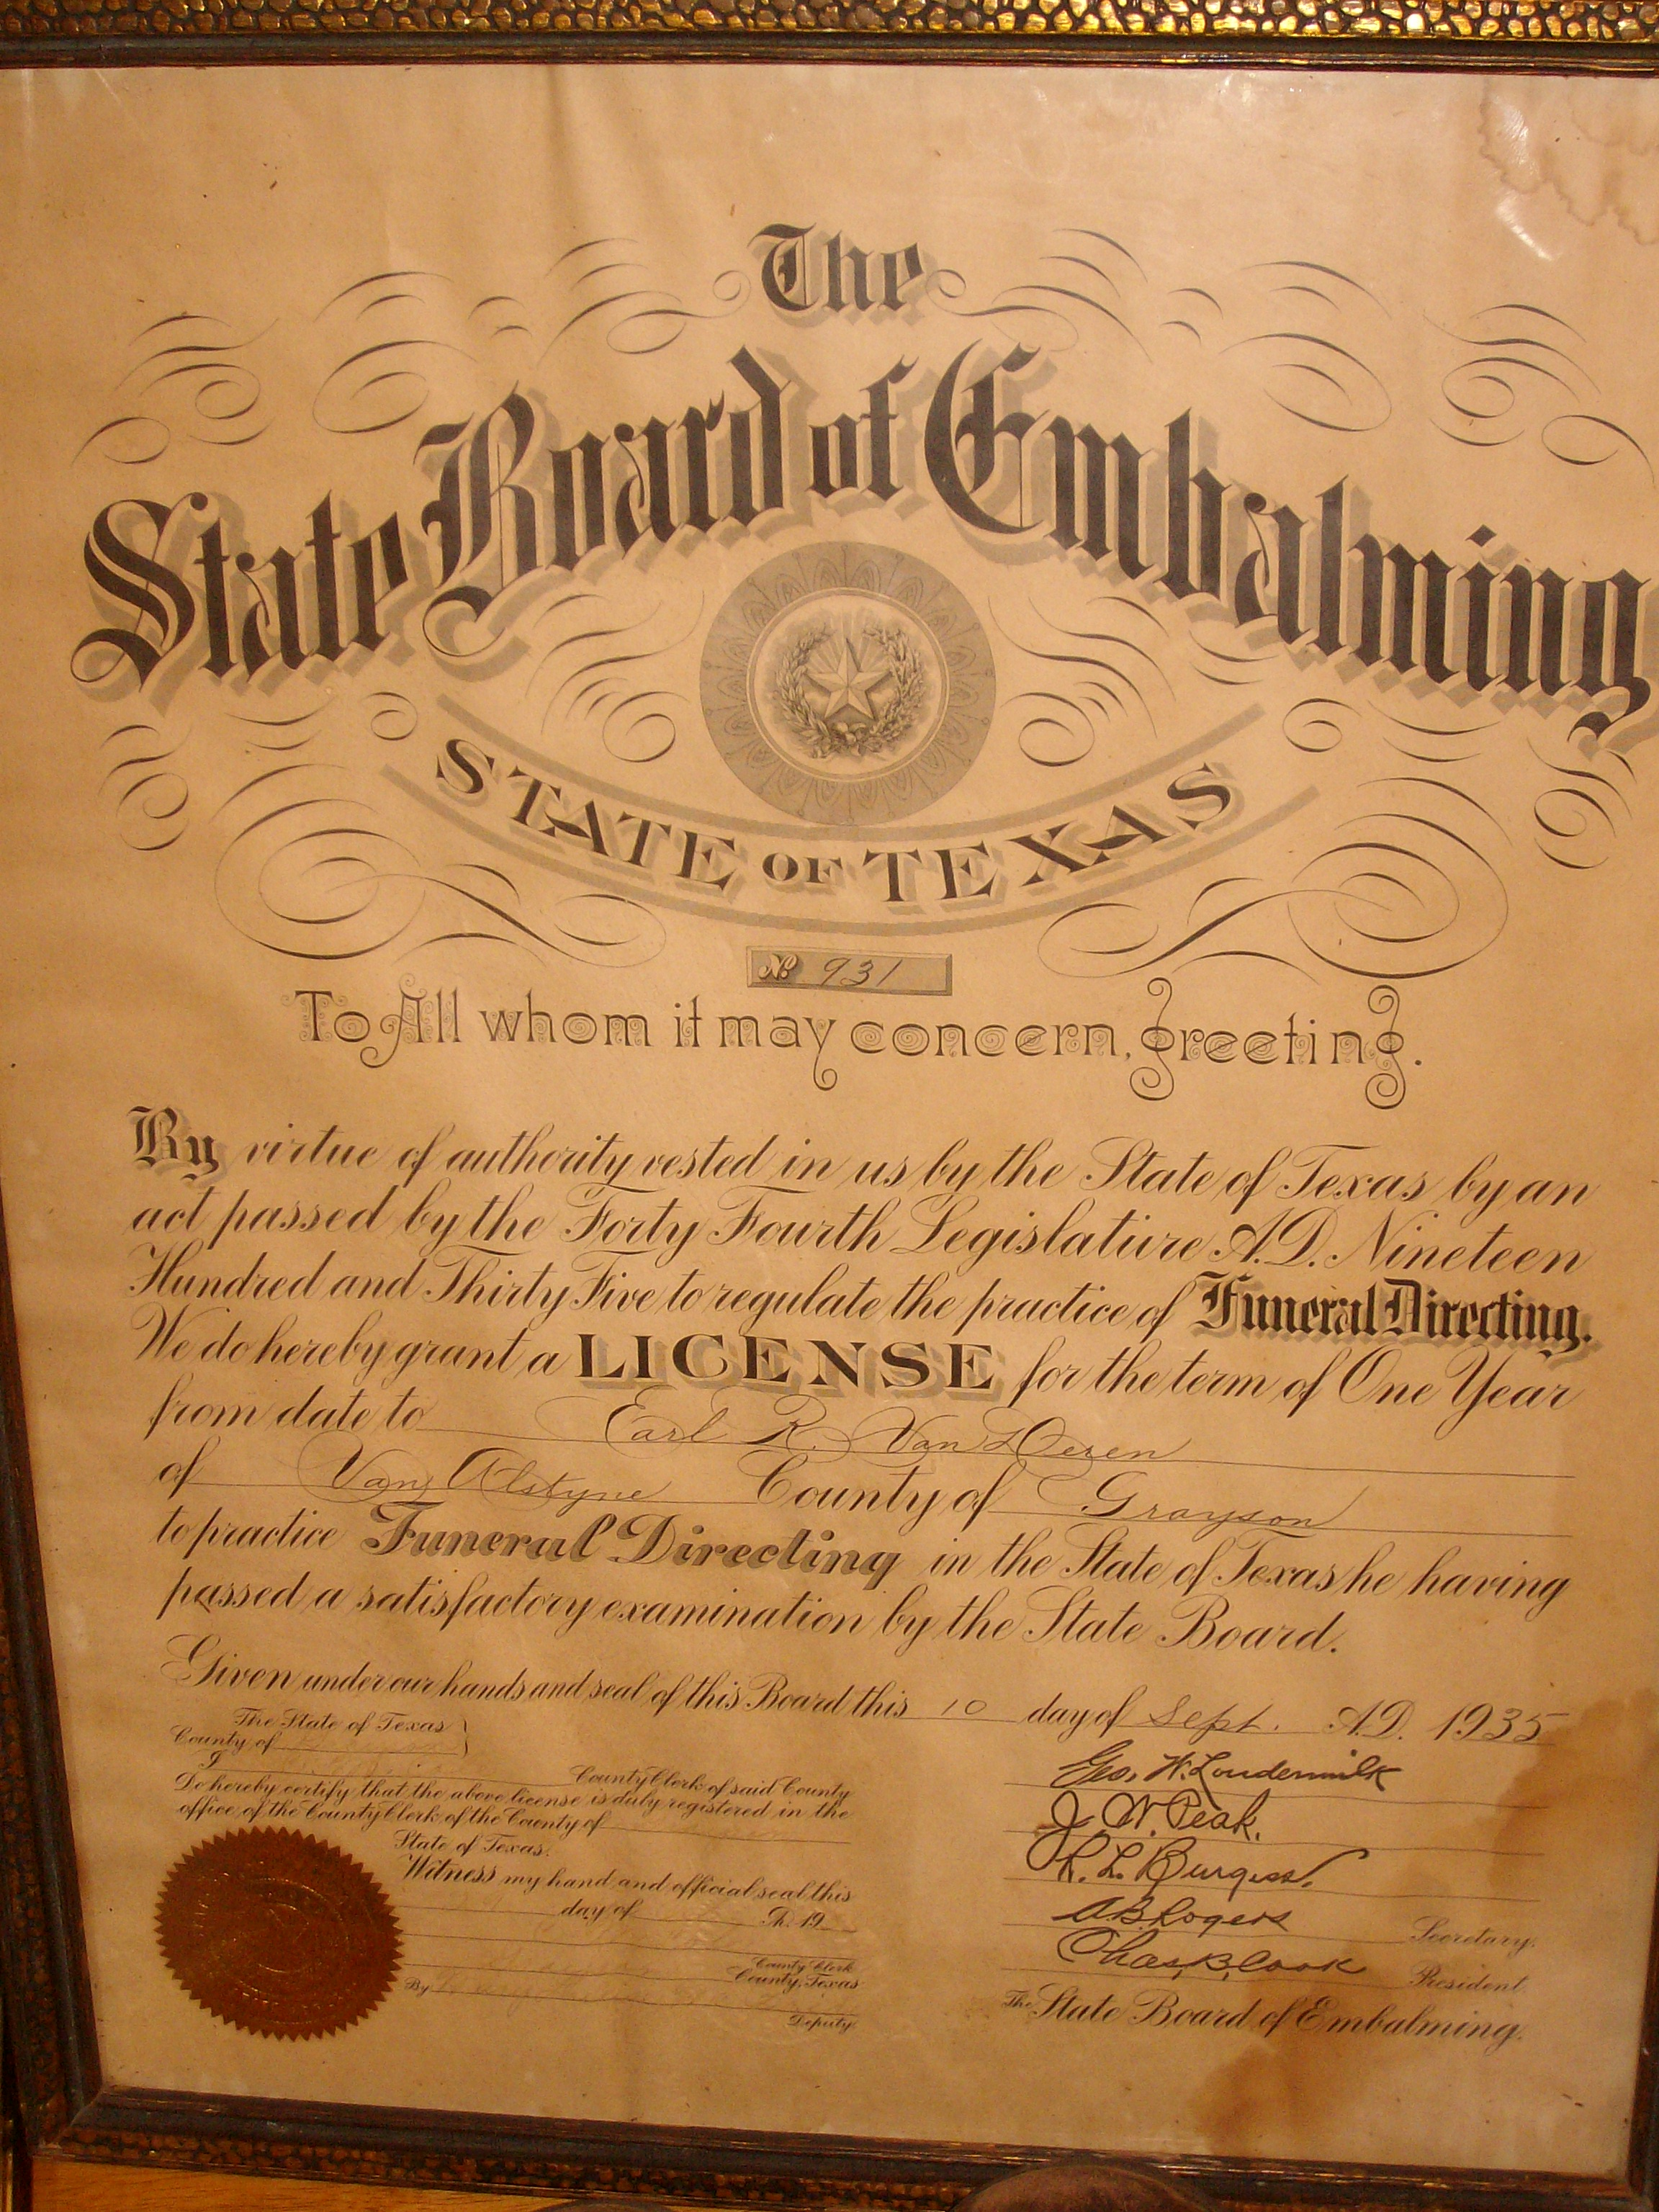 Emablming Certificate september 10 1935